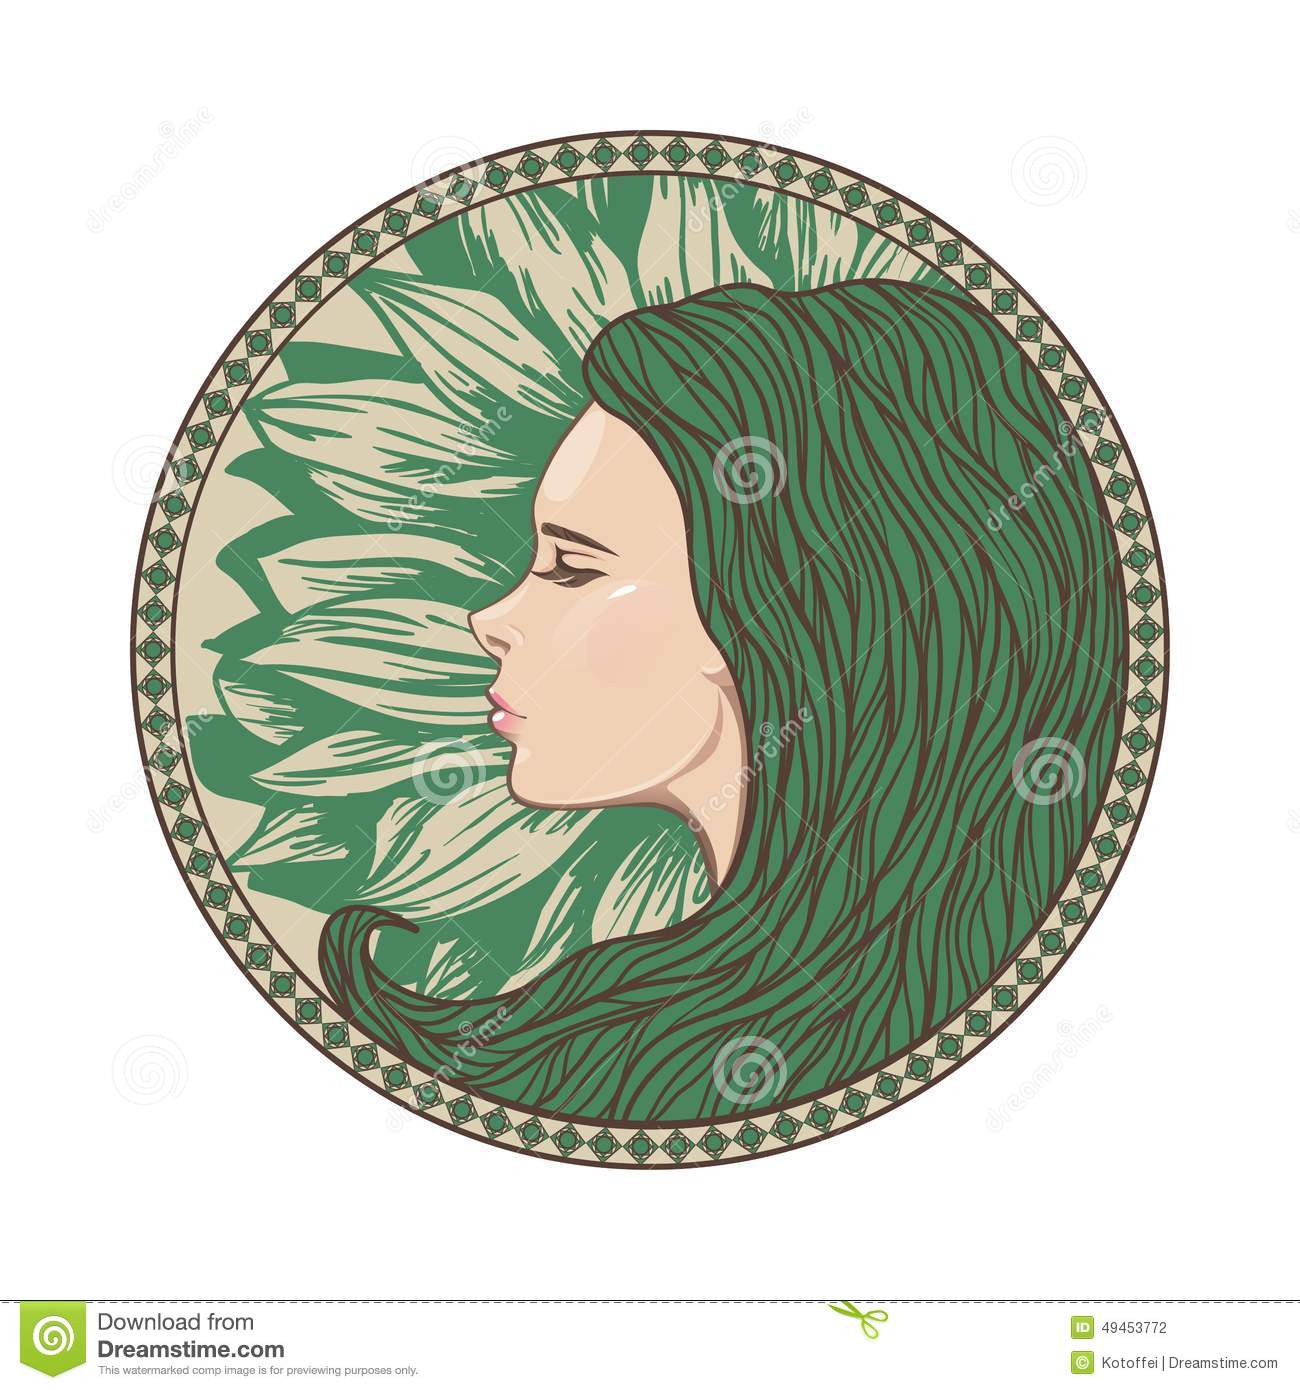 Vintage Girl Portrait In Ornate Circle Frame Stock Vector